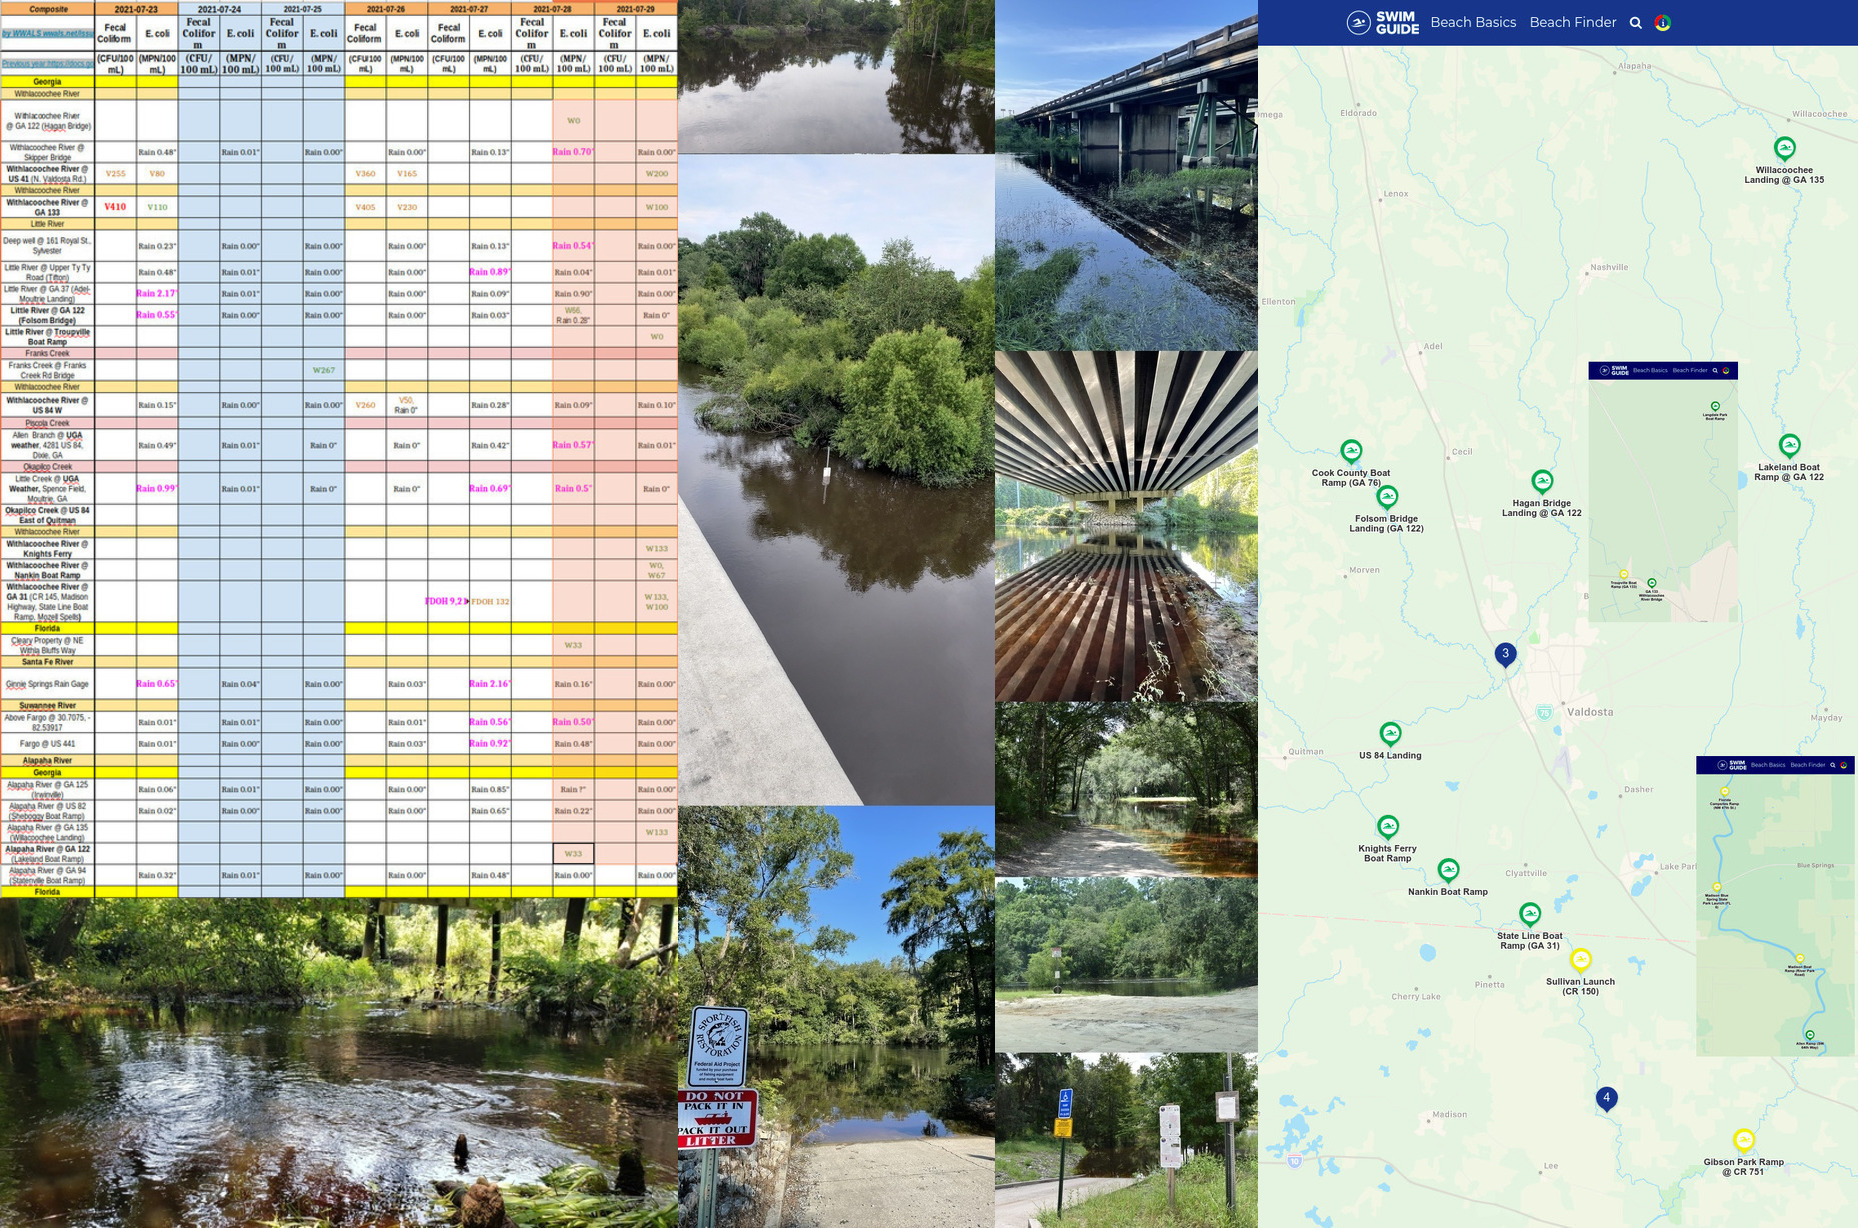 [Chart, Franks Creek, Alapaha River, Little River, Withlacoochee River, Swim Guide]